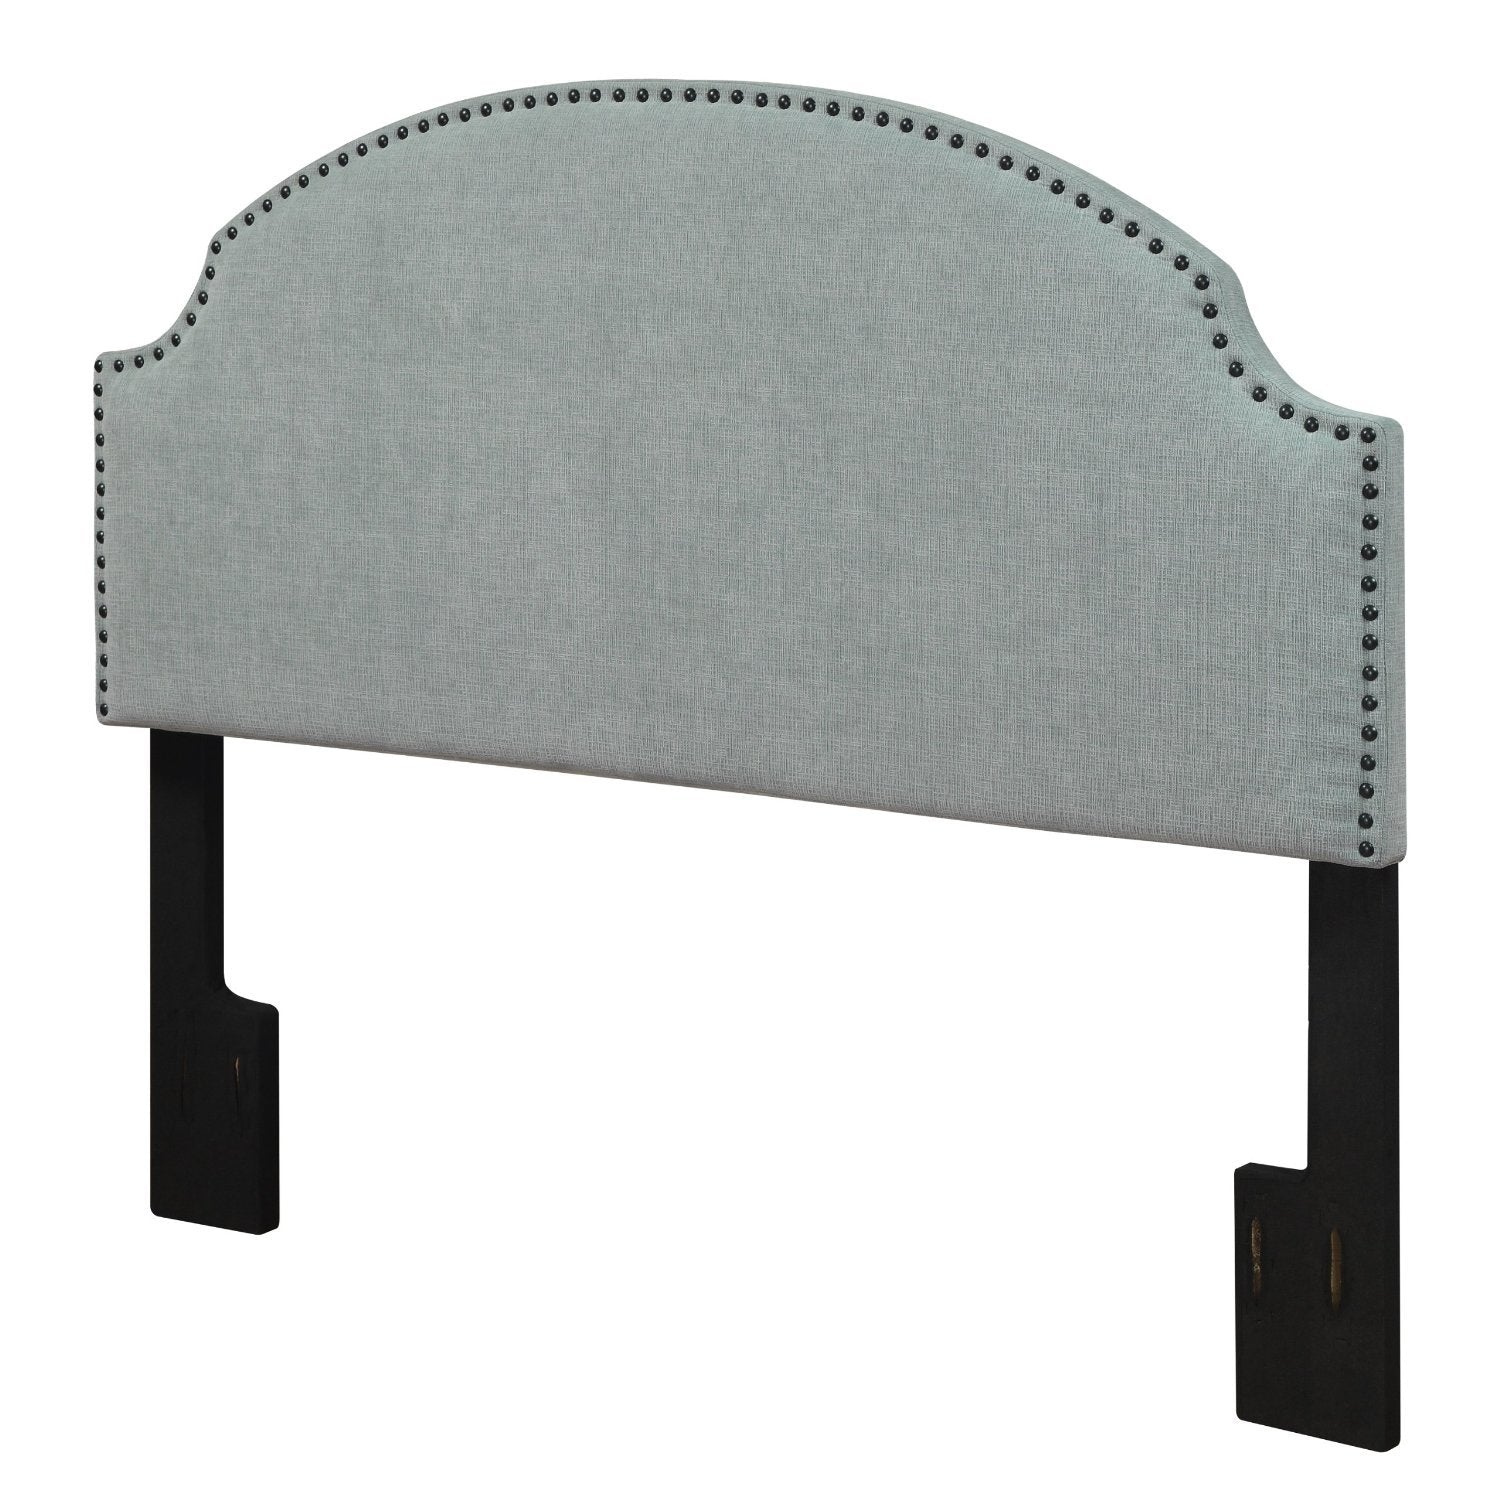 Full / Queen size Nailhead Upholstered Headboard in Soft Turquoise Linen Fabric